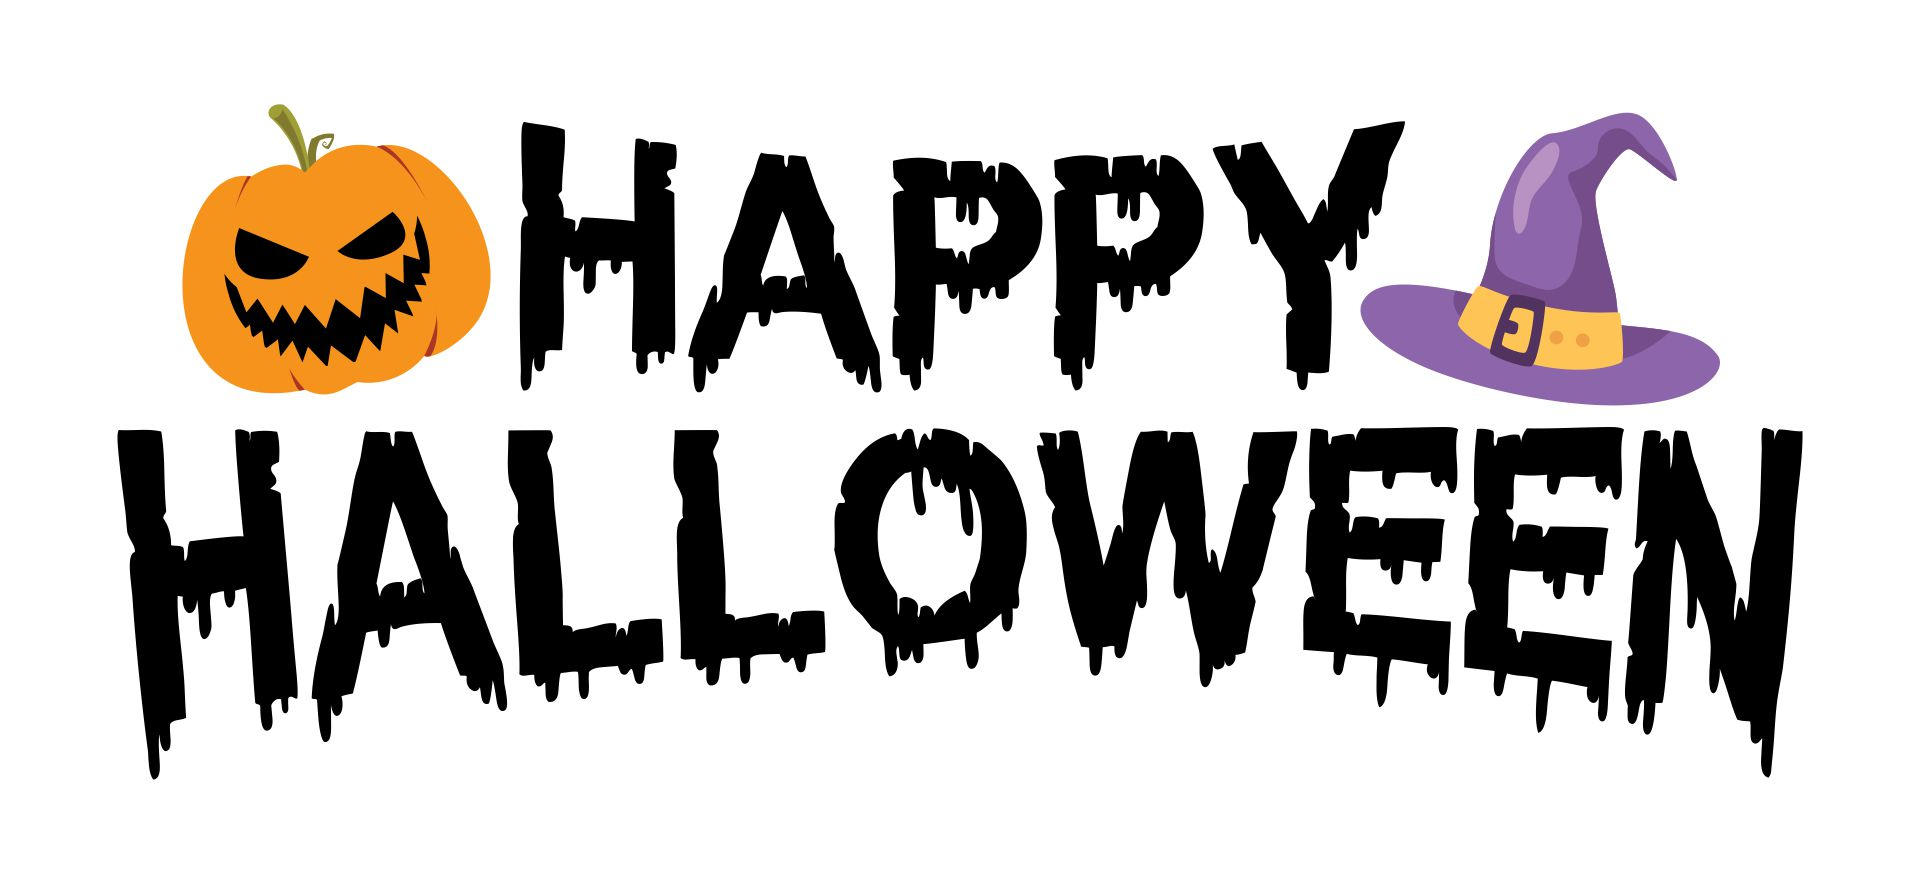 Happy Halloween Print Out